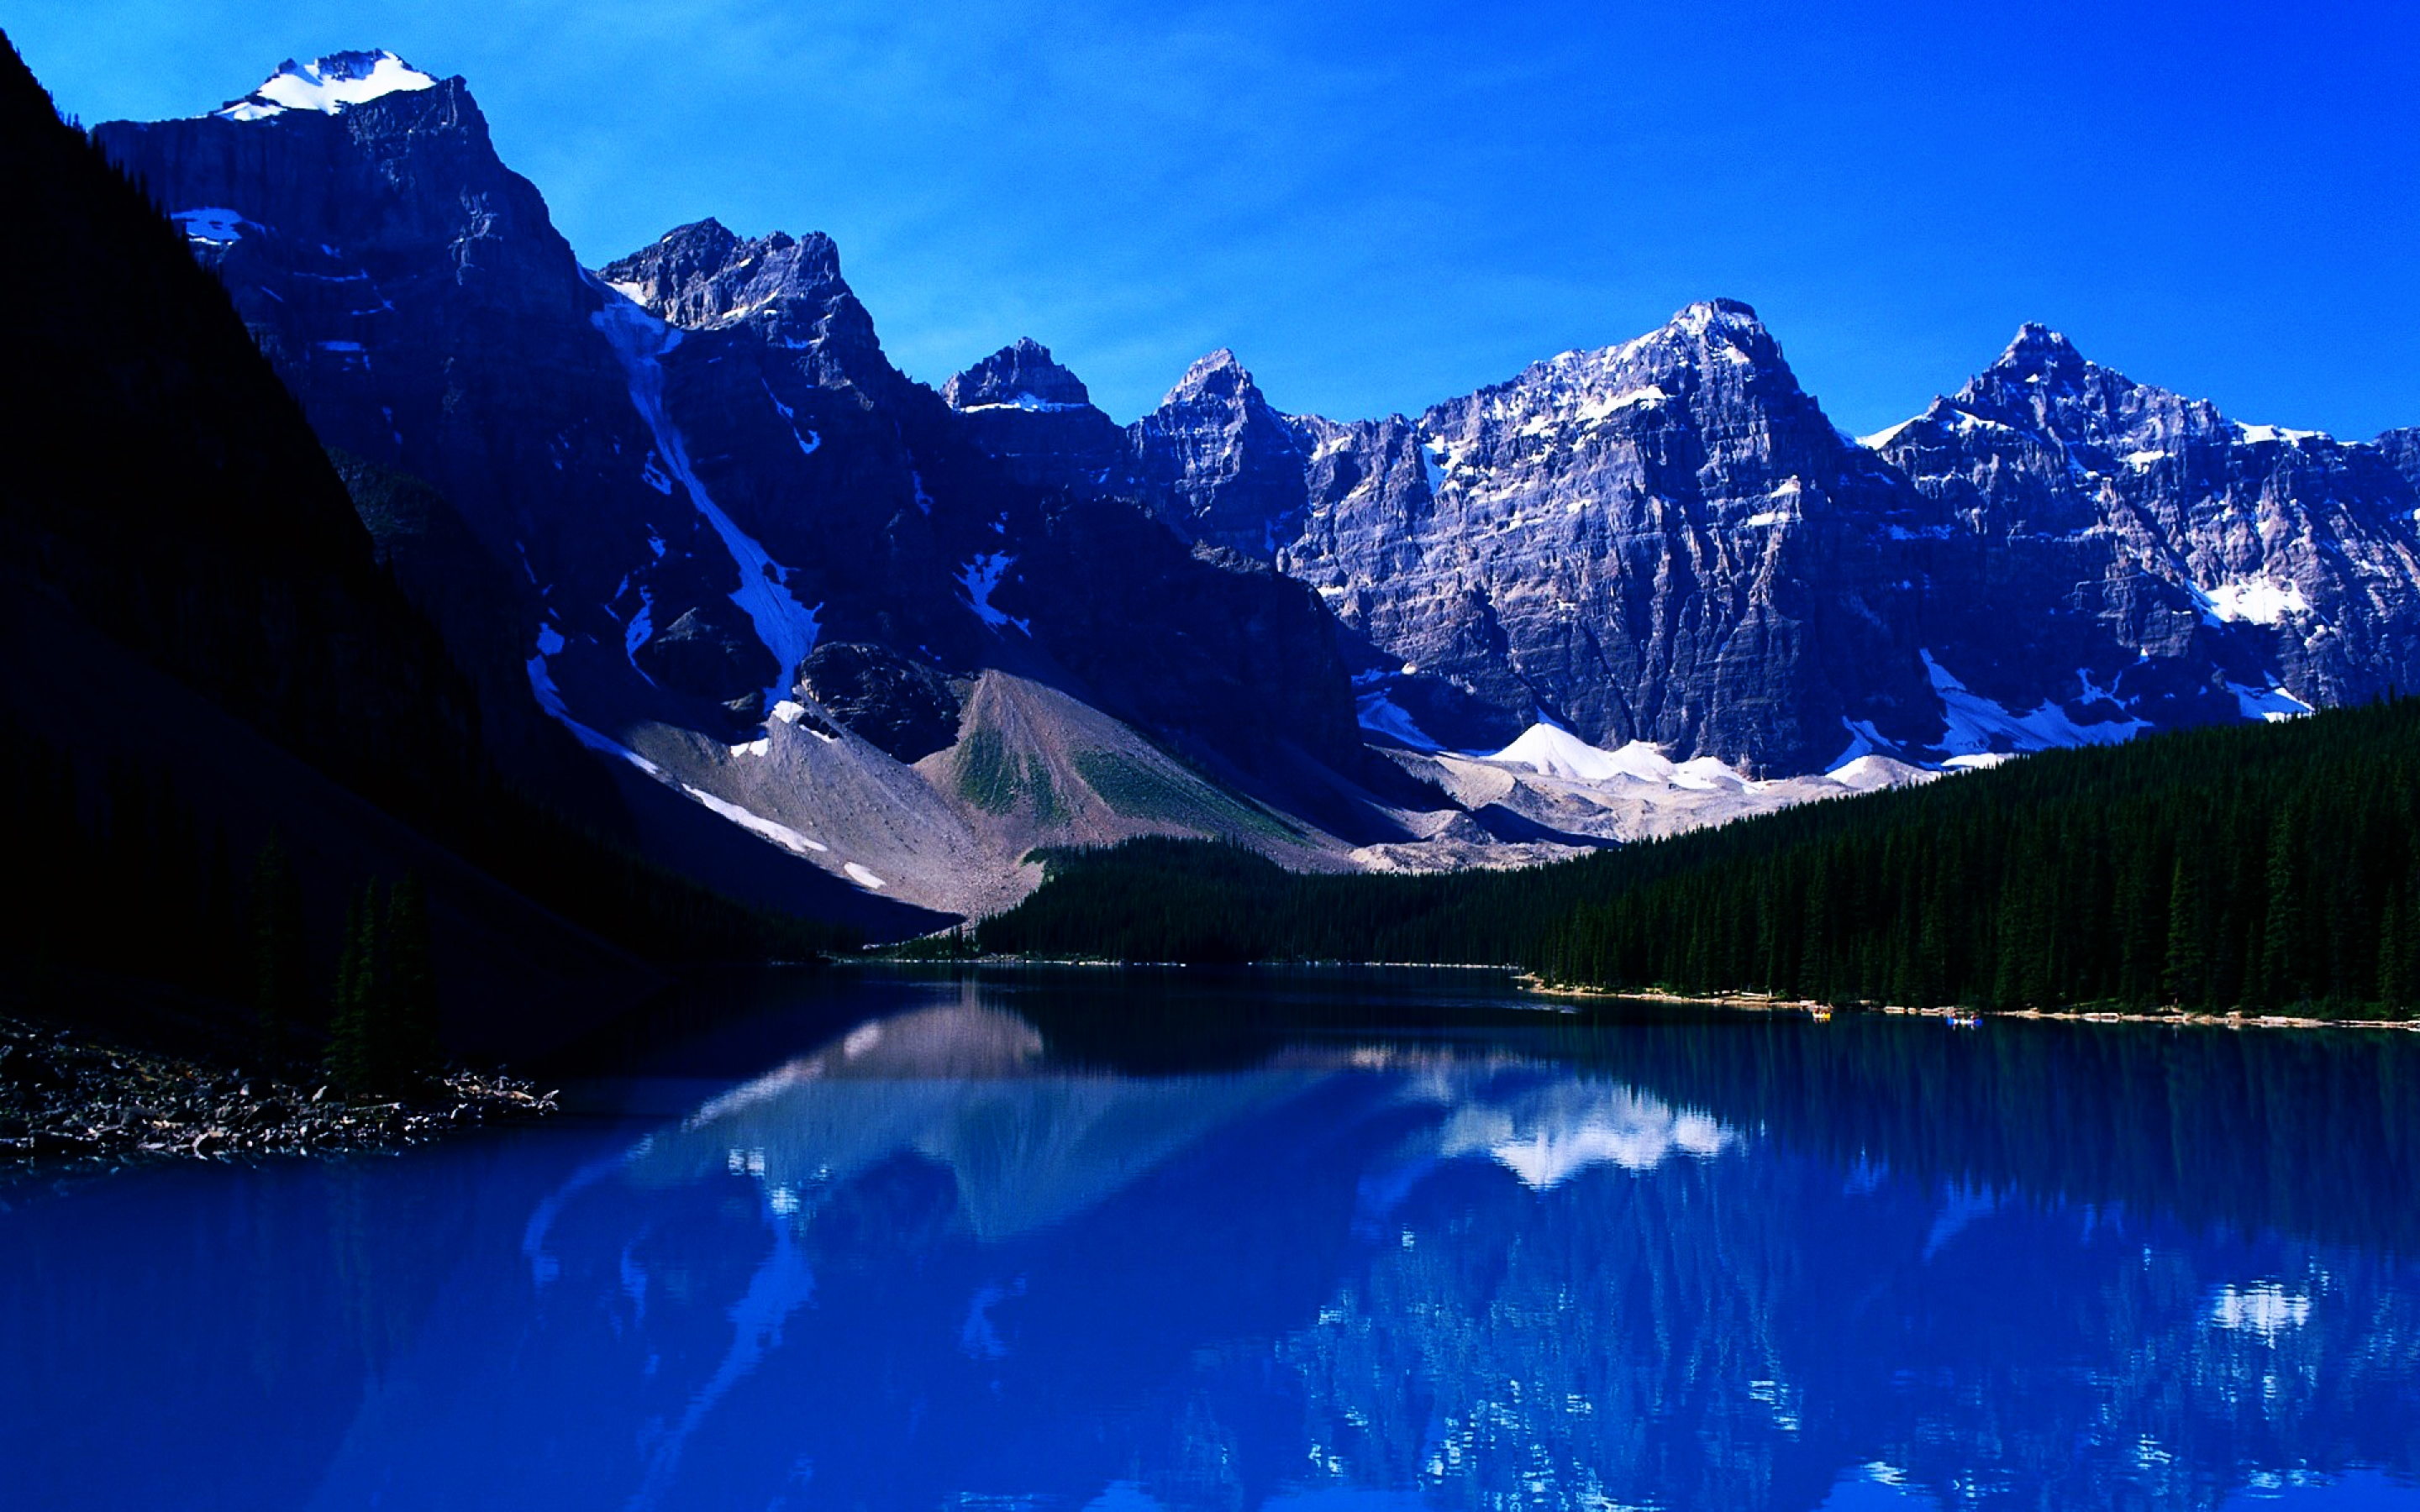 Must see Wallpaper Mountain Blue - f7a4778c788a426dc8748421d5f8a288  Pic_222771.jpg